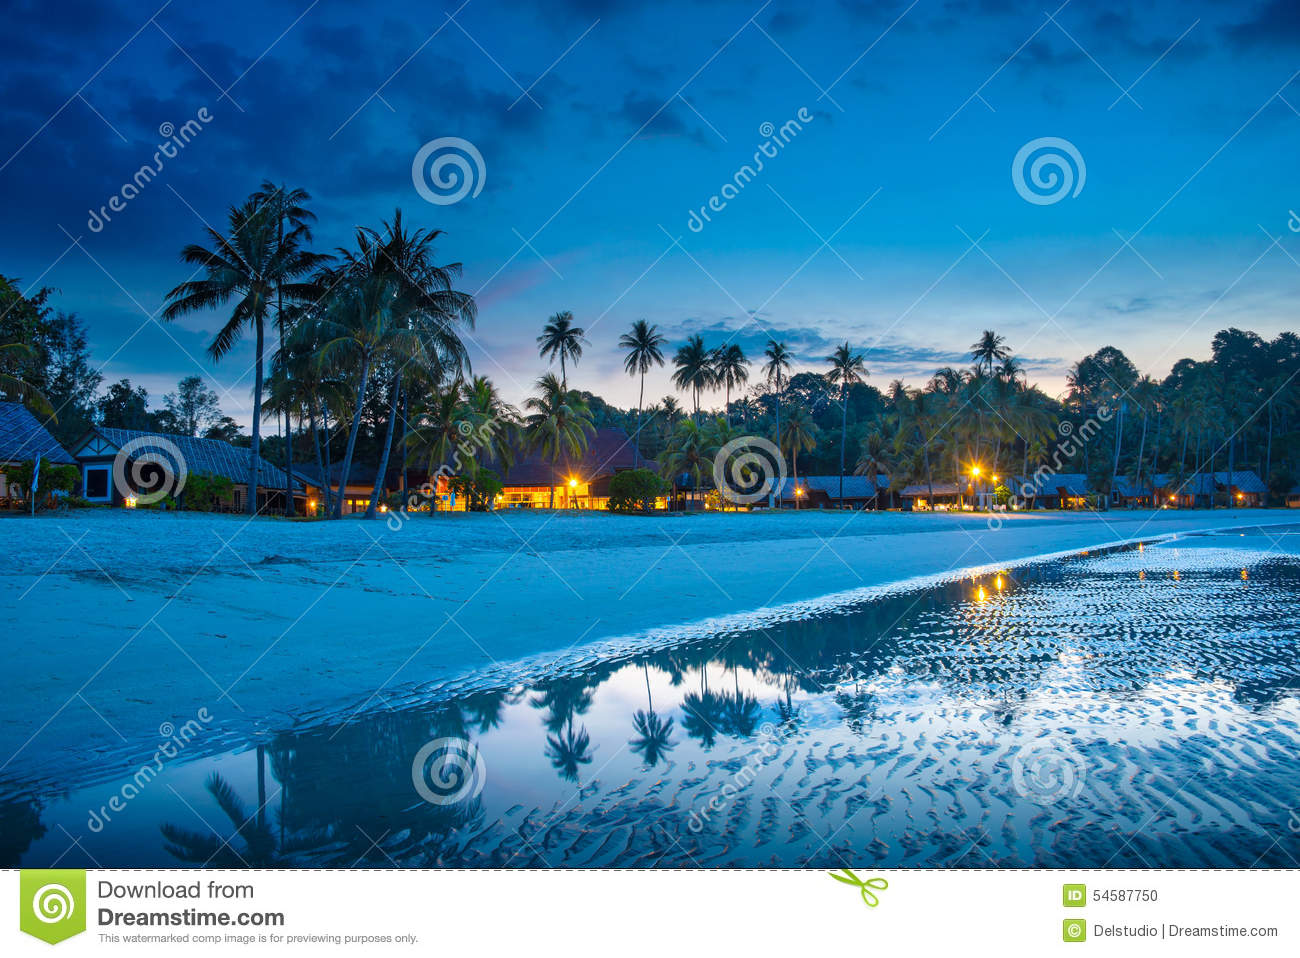 Tropical Beach With Palm Trees And Resort Lights At Night